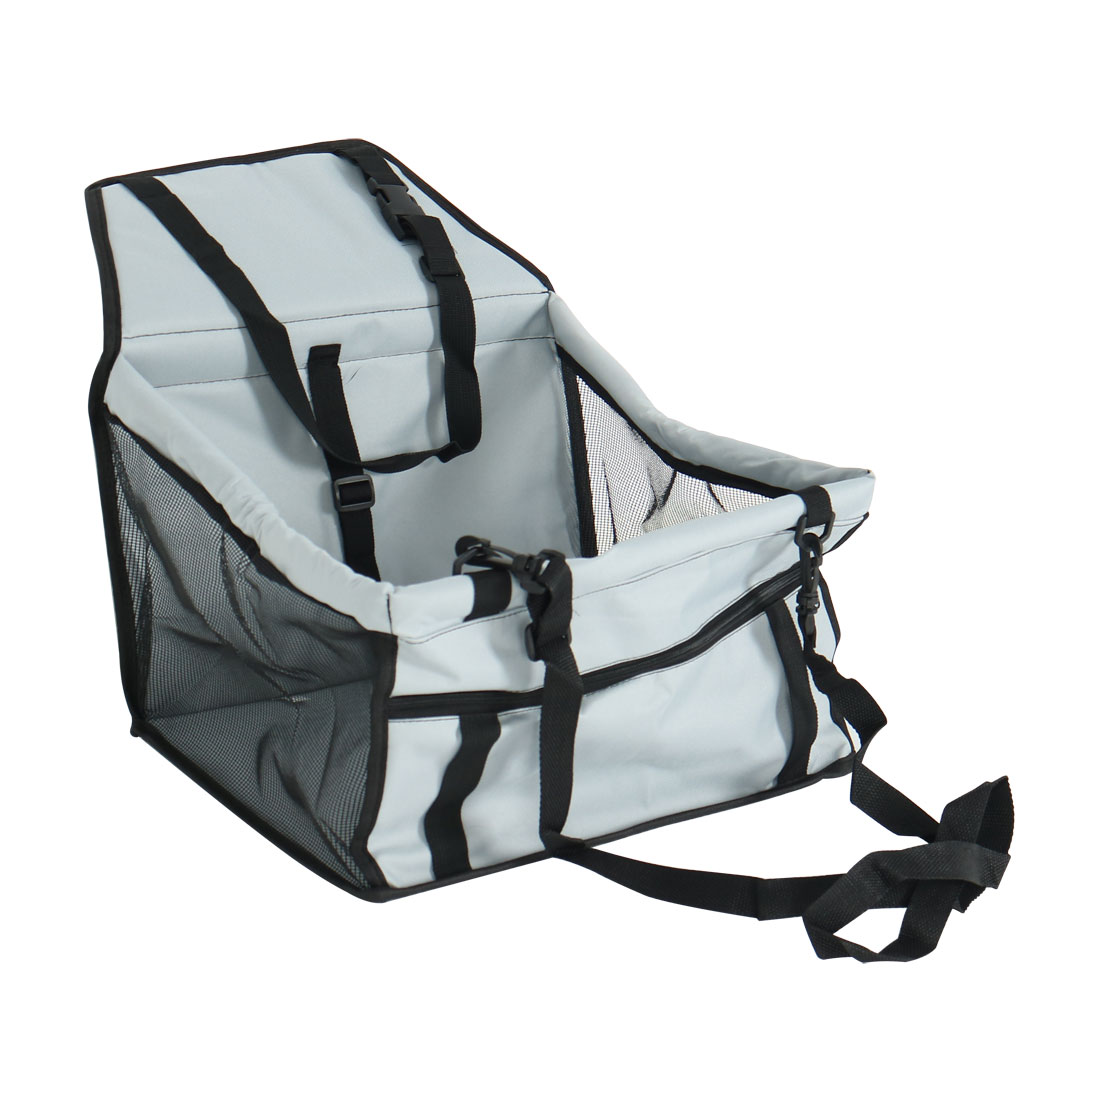 Car Booster Seat Dog Carrier Portable Folding Holder Protector Light Gray